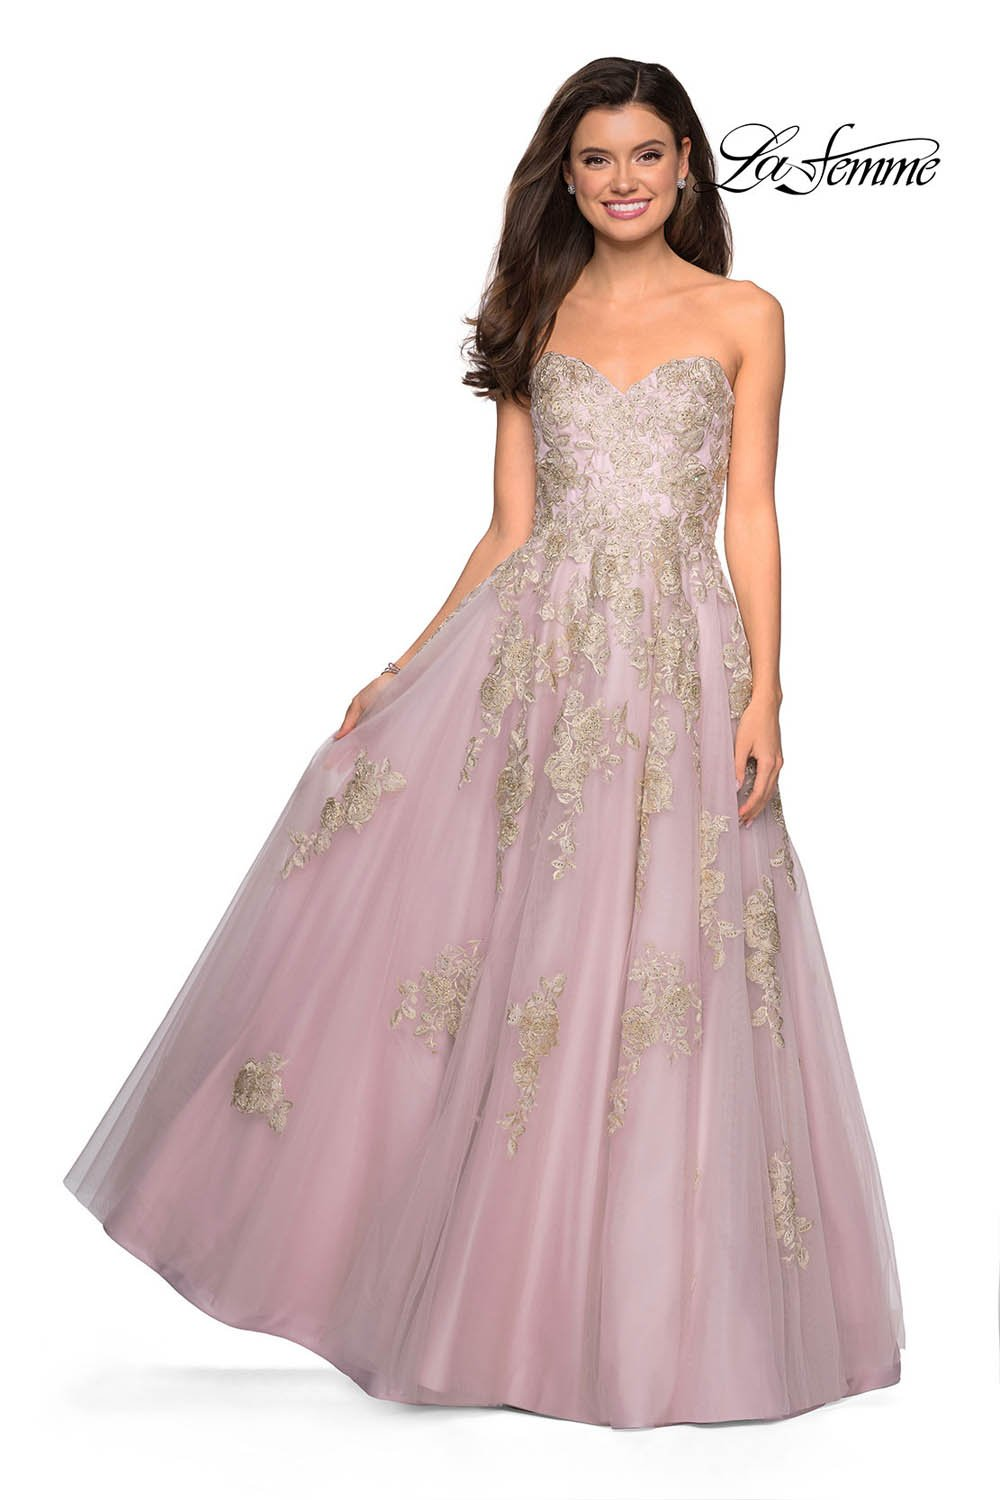 Gigi by La Femme 27731 prom dress images.  Gigi by La Femme 27731 is available in these colors: Dusty Pink, Platinum.